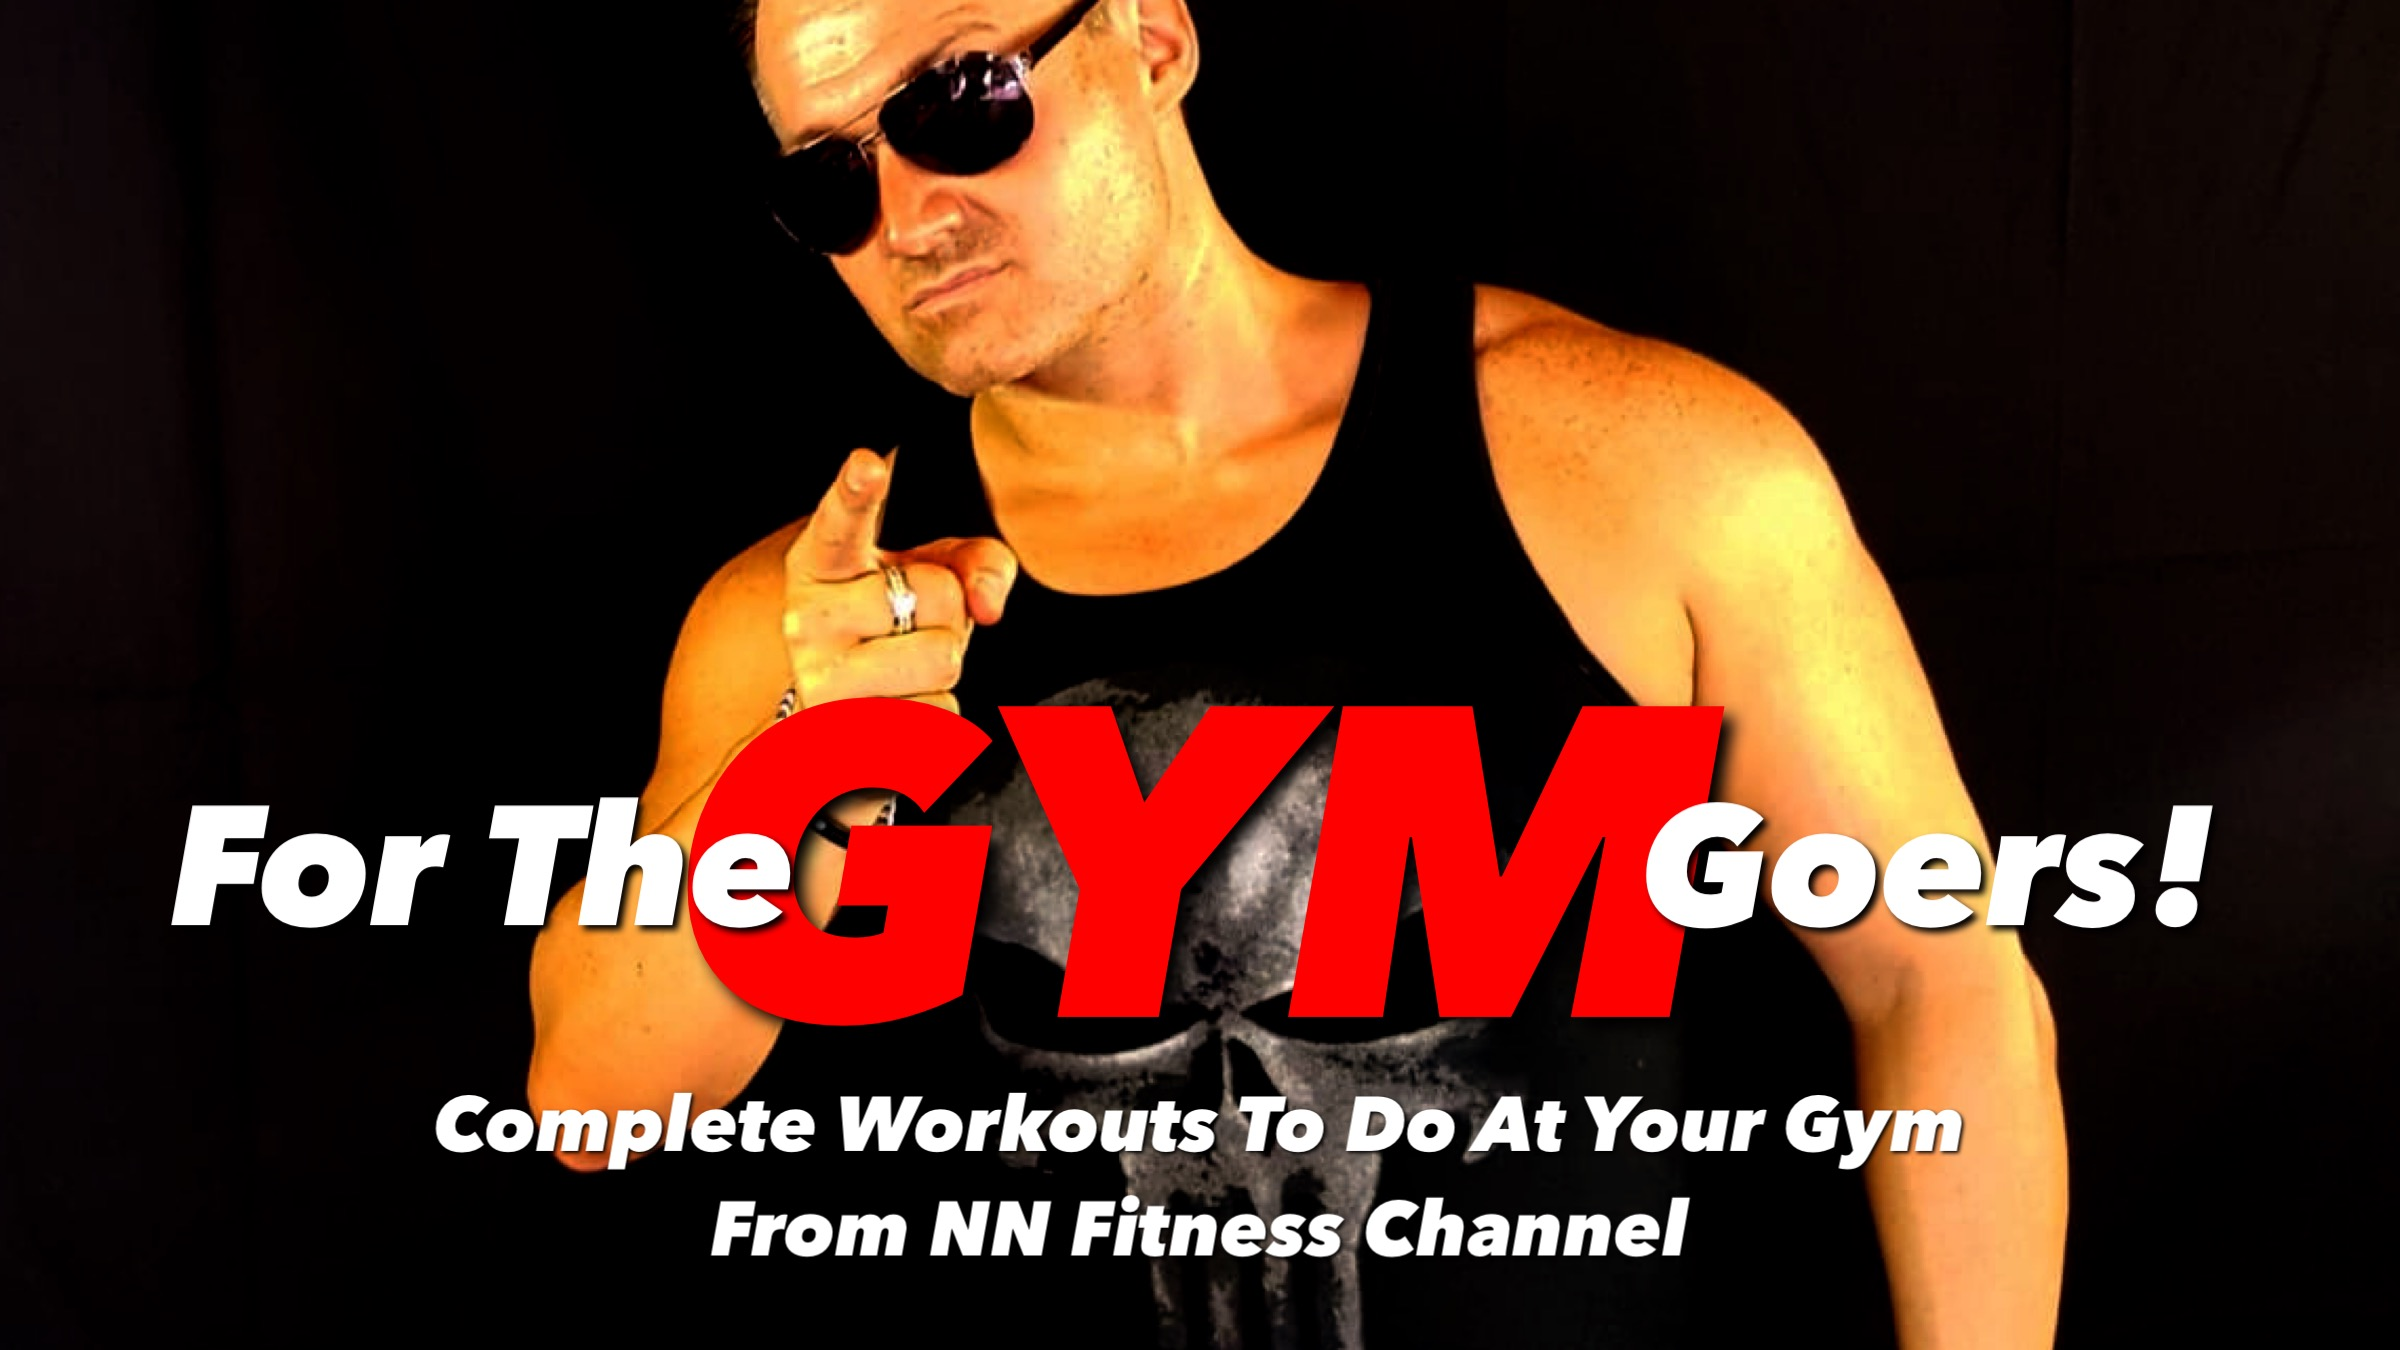 Are you a GYM GOER?